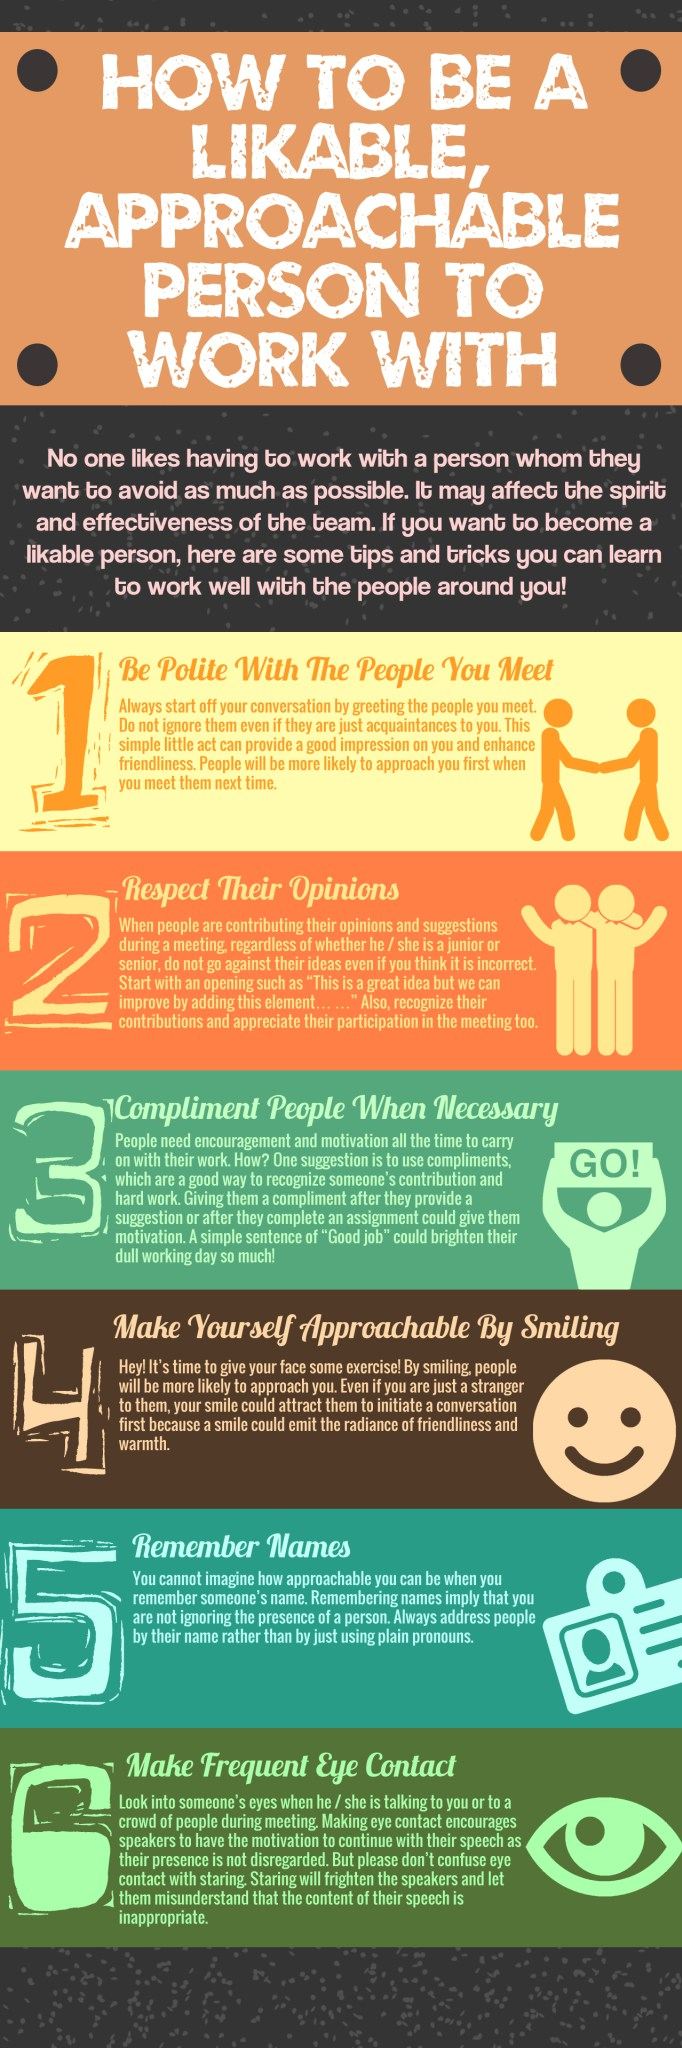 How To Be A Likable, Approachable Person To Work With